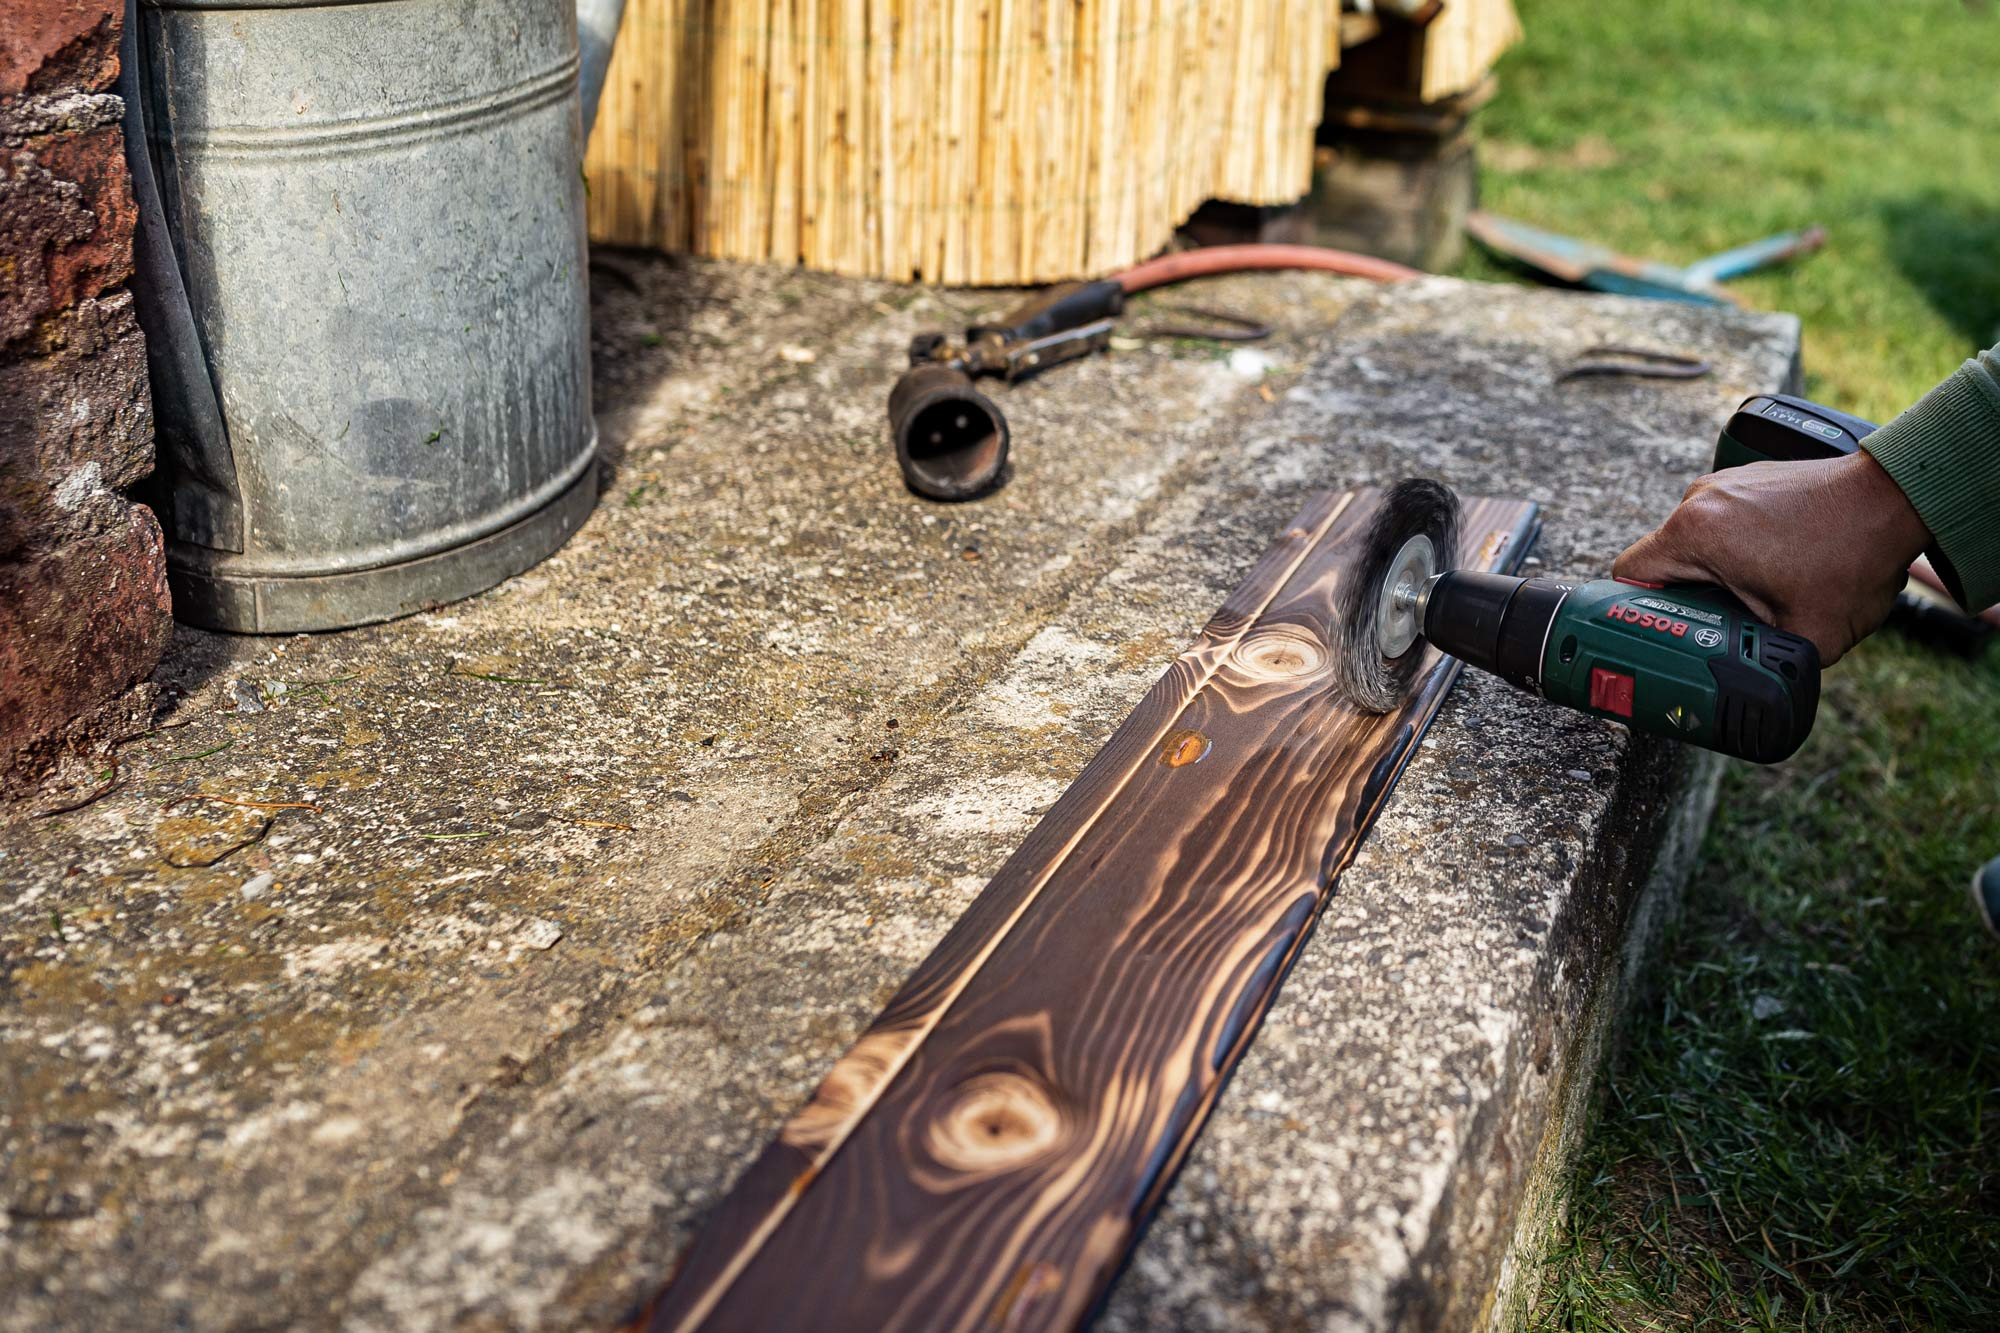 Building photographic backgrounds. A hand holding an electric emery sanding a piece of wood.